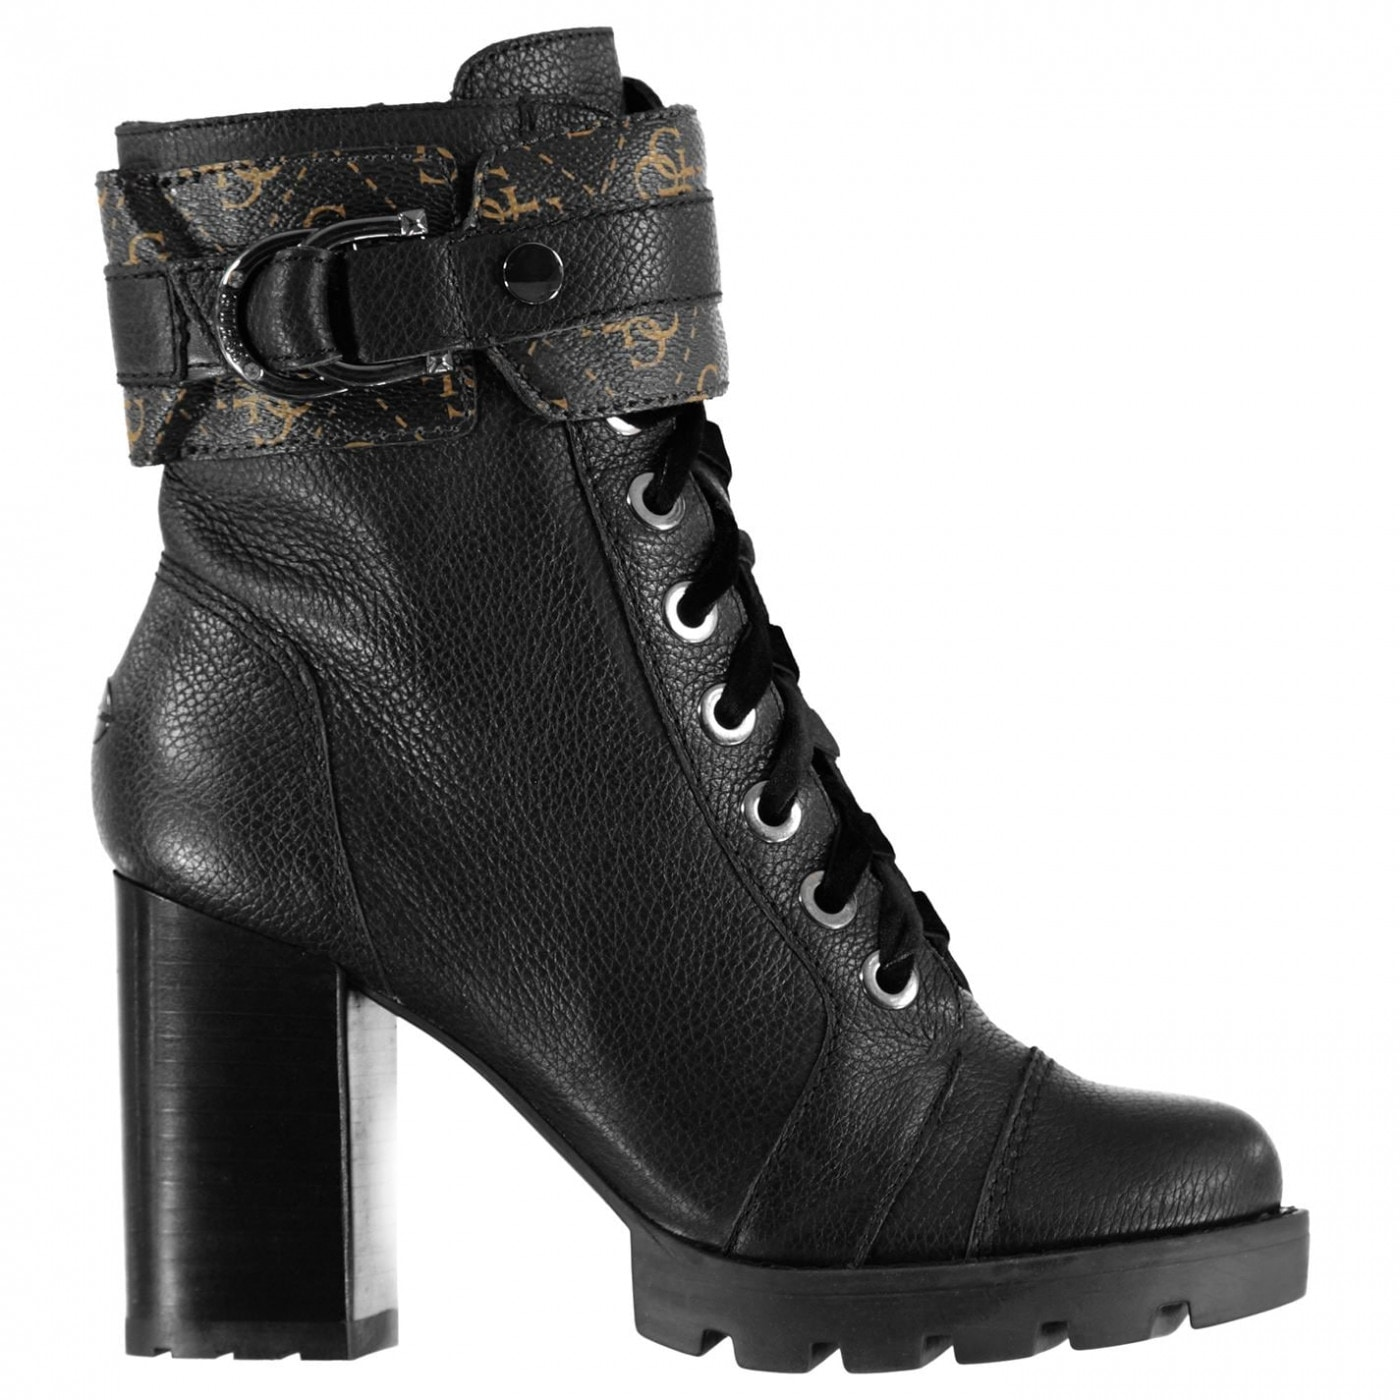 Guess Radell Ankle Boots